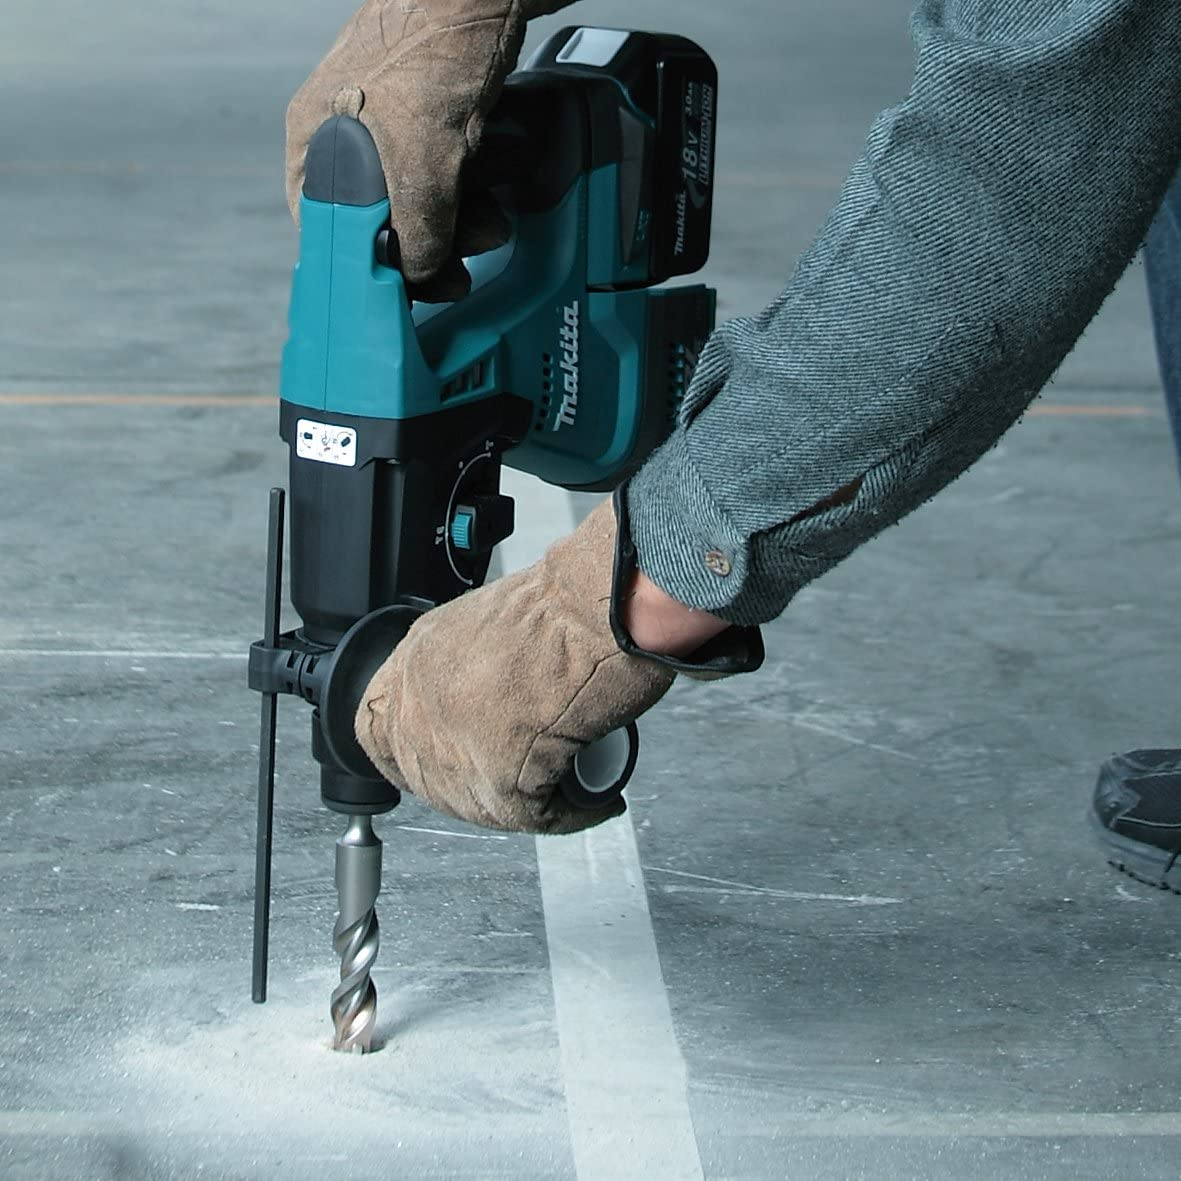 Makita dhr243zj perforateur-burineur Wireless for SDS-Plus 18 V in Makpac Battery and Charger not Included Black Blue